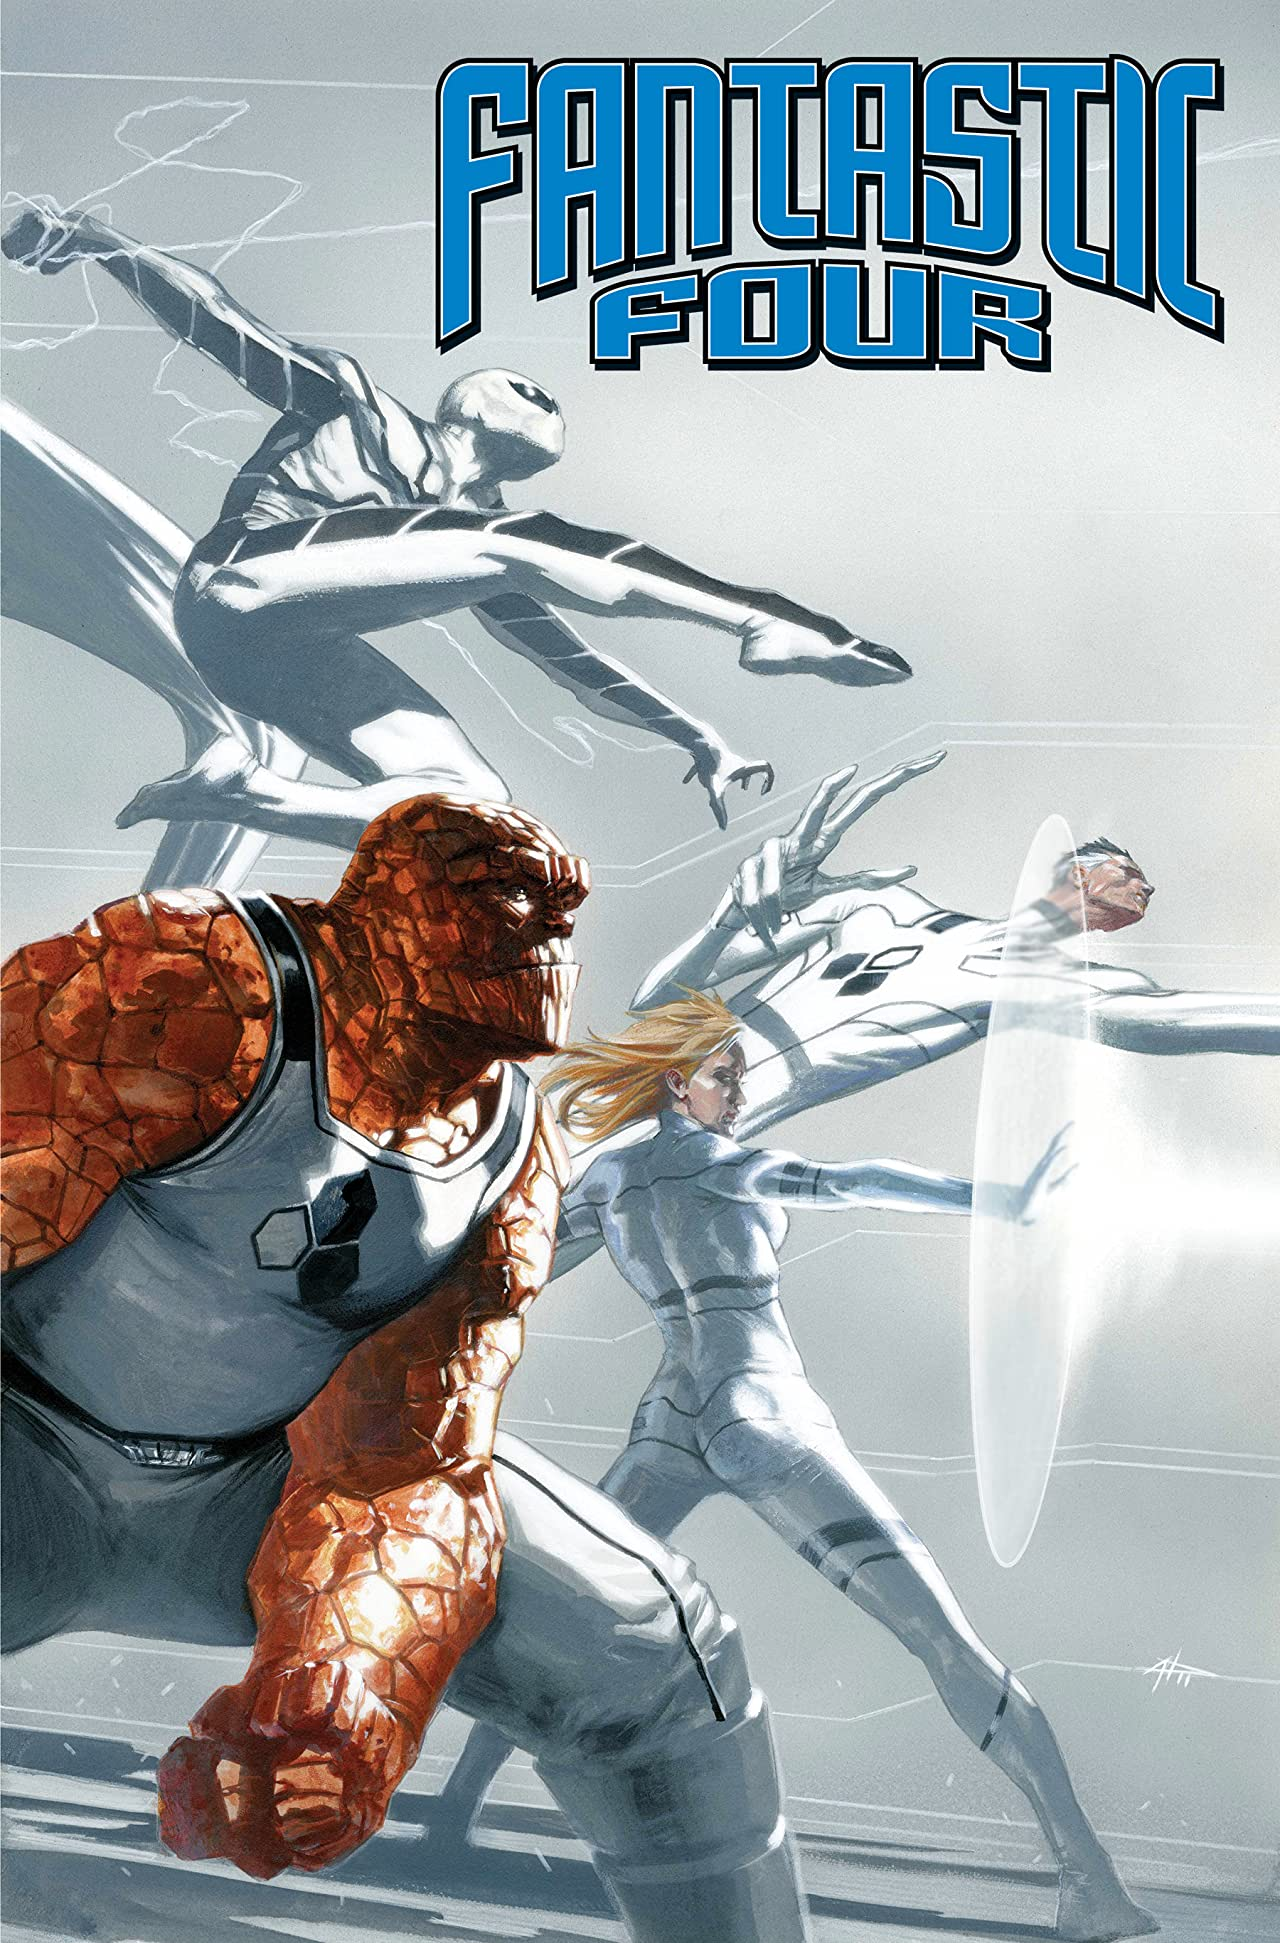 Fantastic Four by Jonathan Hickman: The Complete Collection Vol. 3 (Trade Paperback)